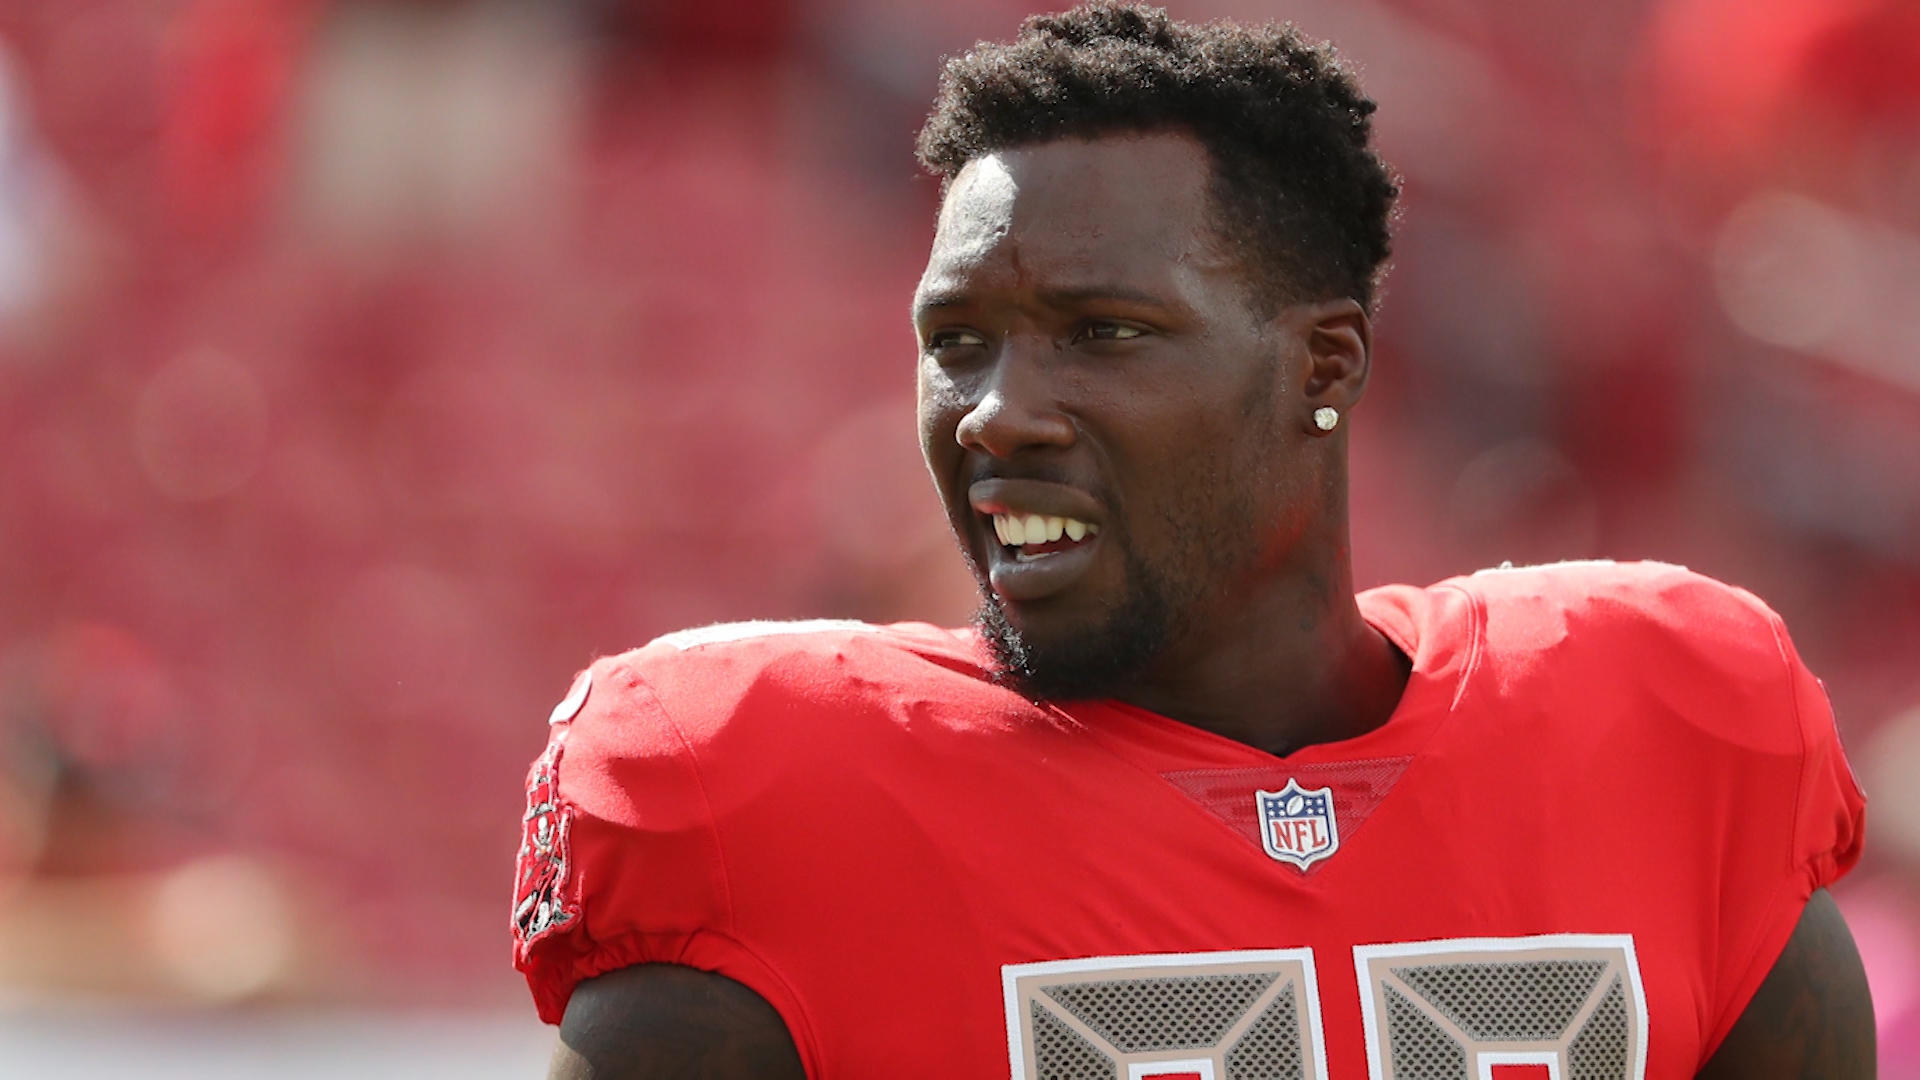 Buccaneers' Jason Pierre-Paul could reportedly miss 2019 season due to neck fracture after car accident